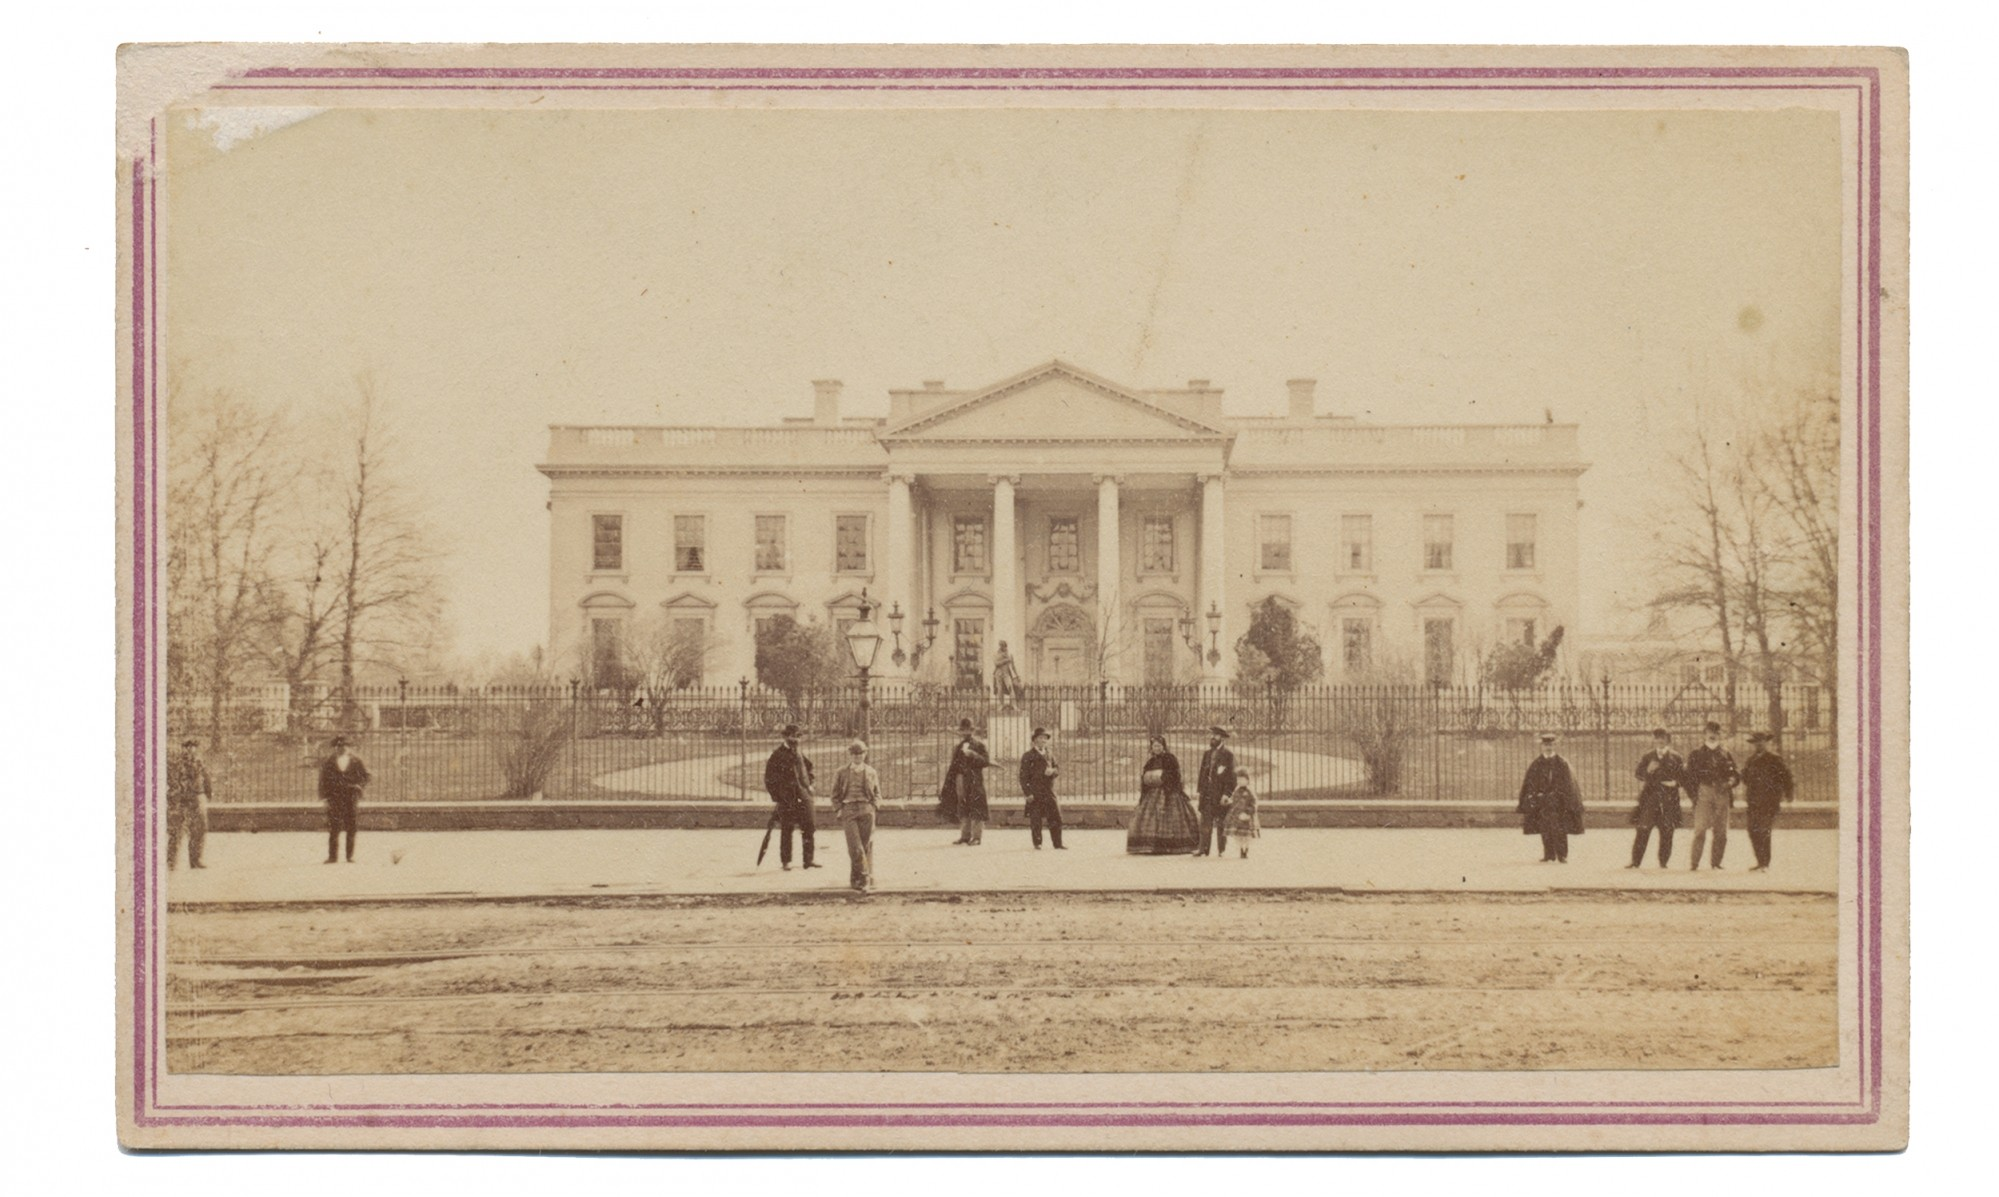 CDV WARTIME VIEW OF THE WHITE HOUSE